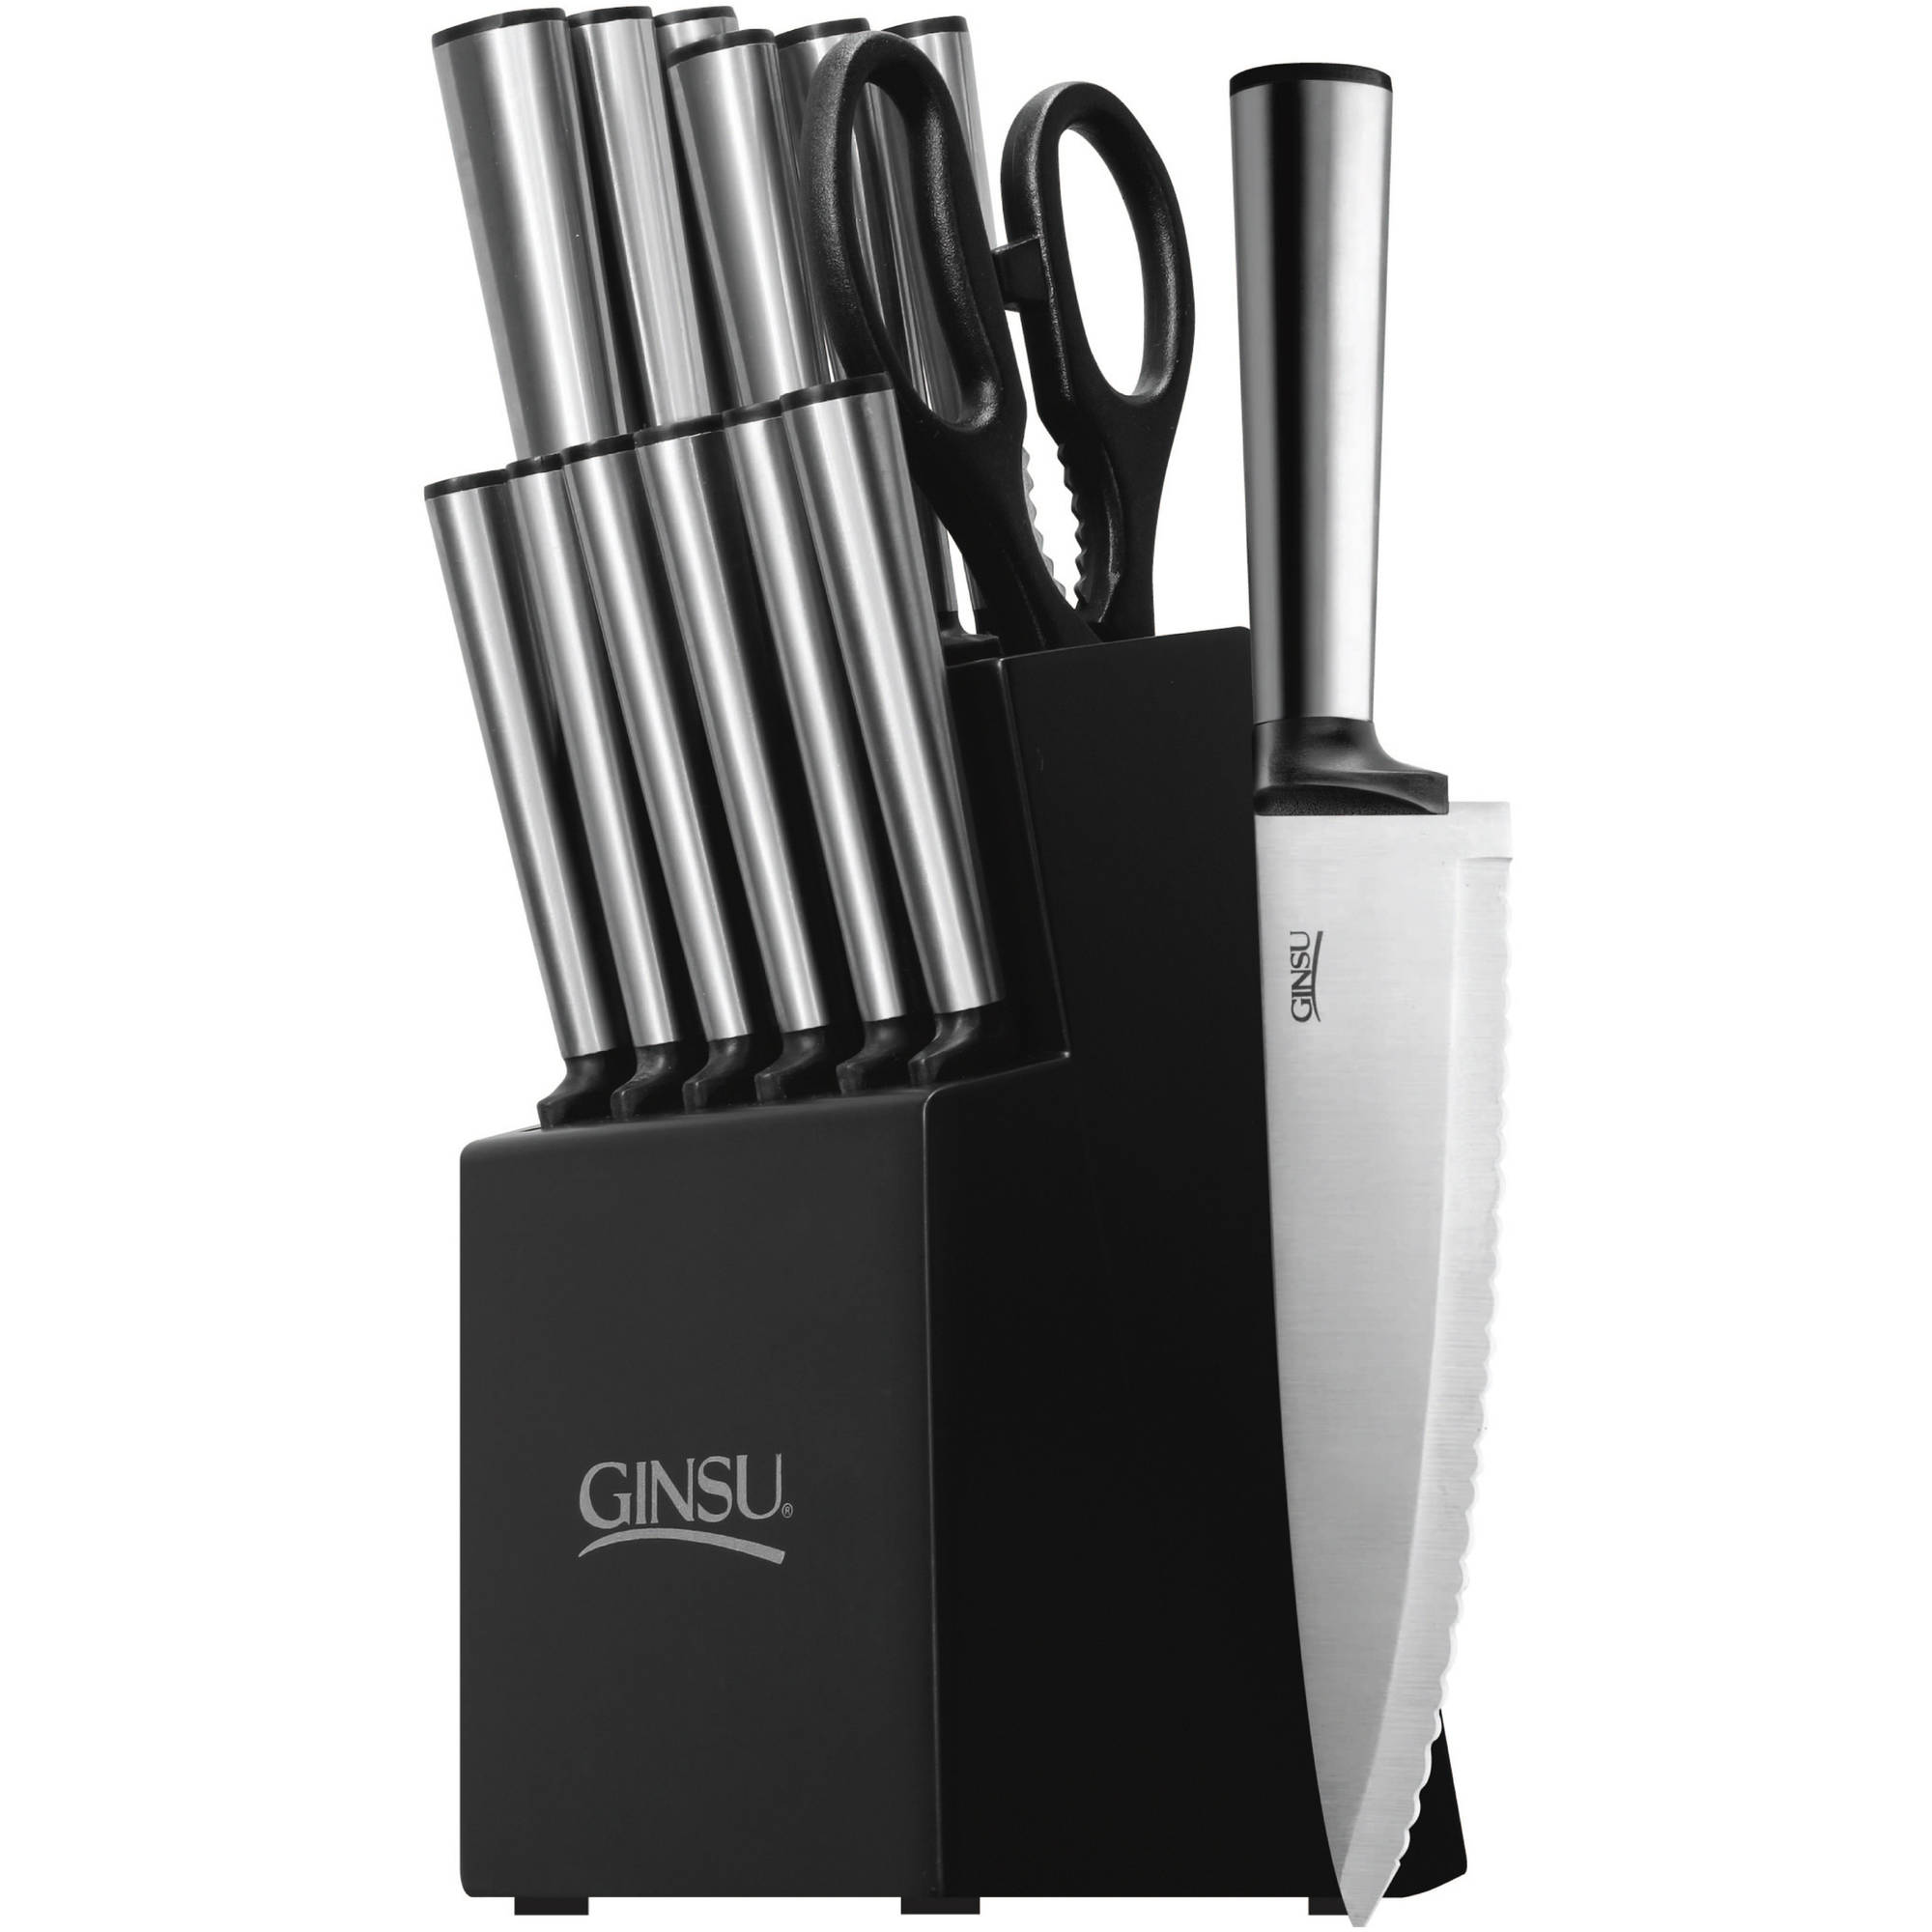 Ginsu Koden Series 14-Piece Stainless Steel Serrated Knife Set – Cutlery Set with Stainless Steel Kitchen Knives in a Black Block, GKK-SS-DS-014-5